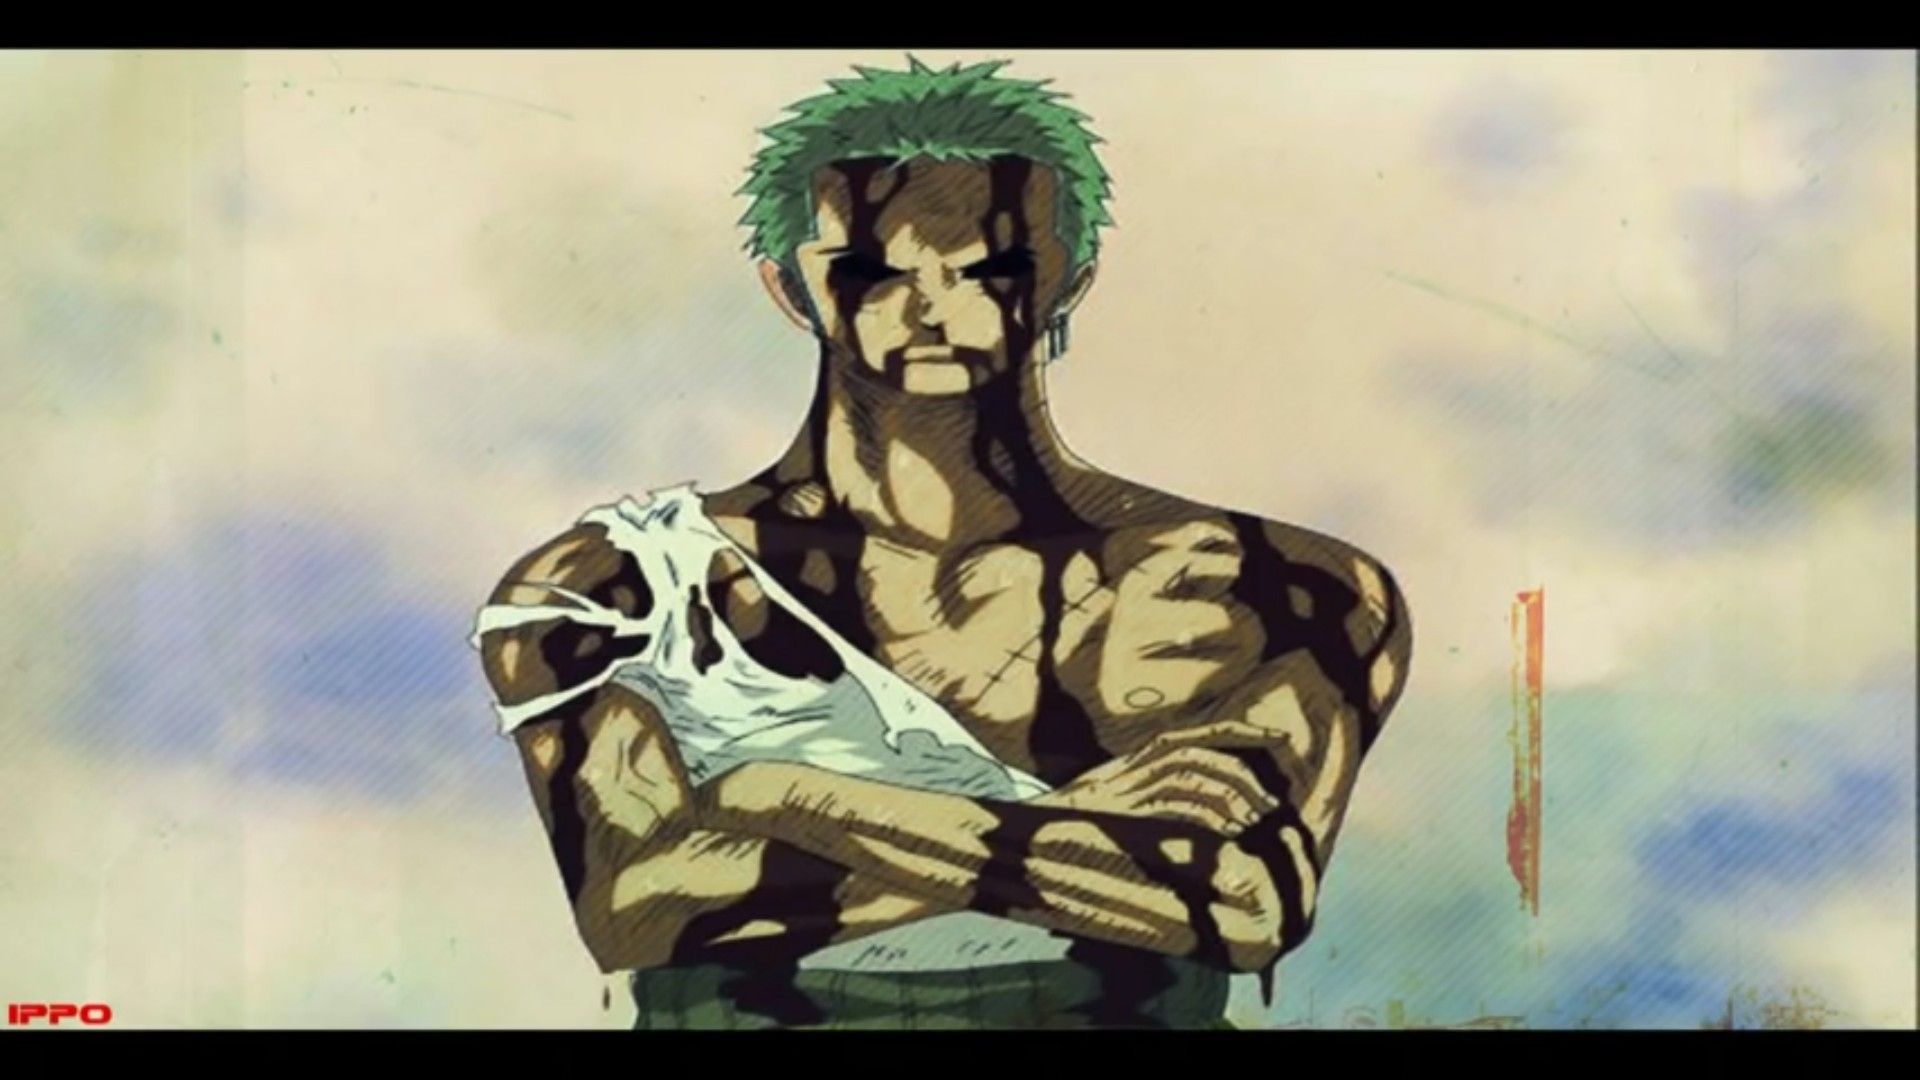 Pin by Đ&&¥₤ on Anime One piece music, Good music, Anime